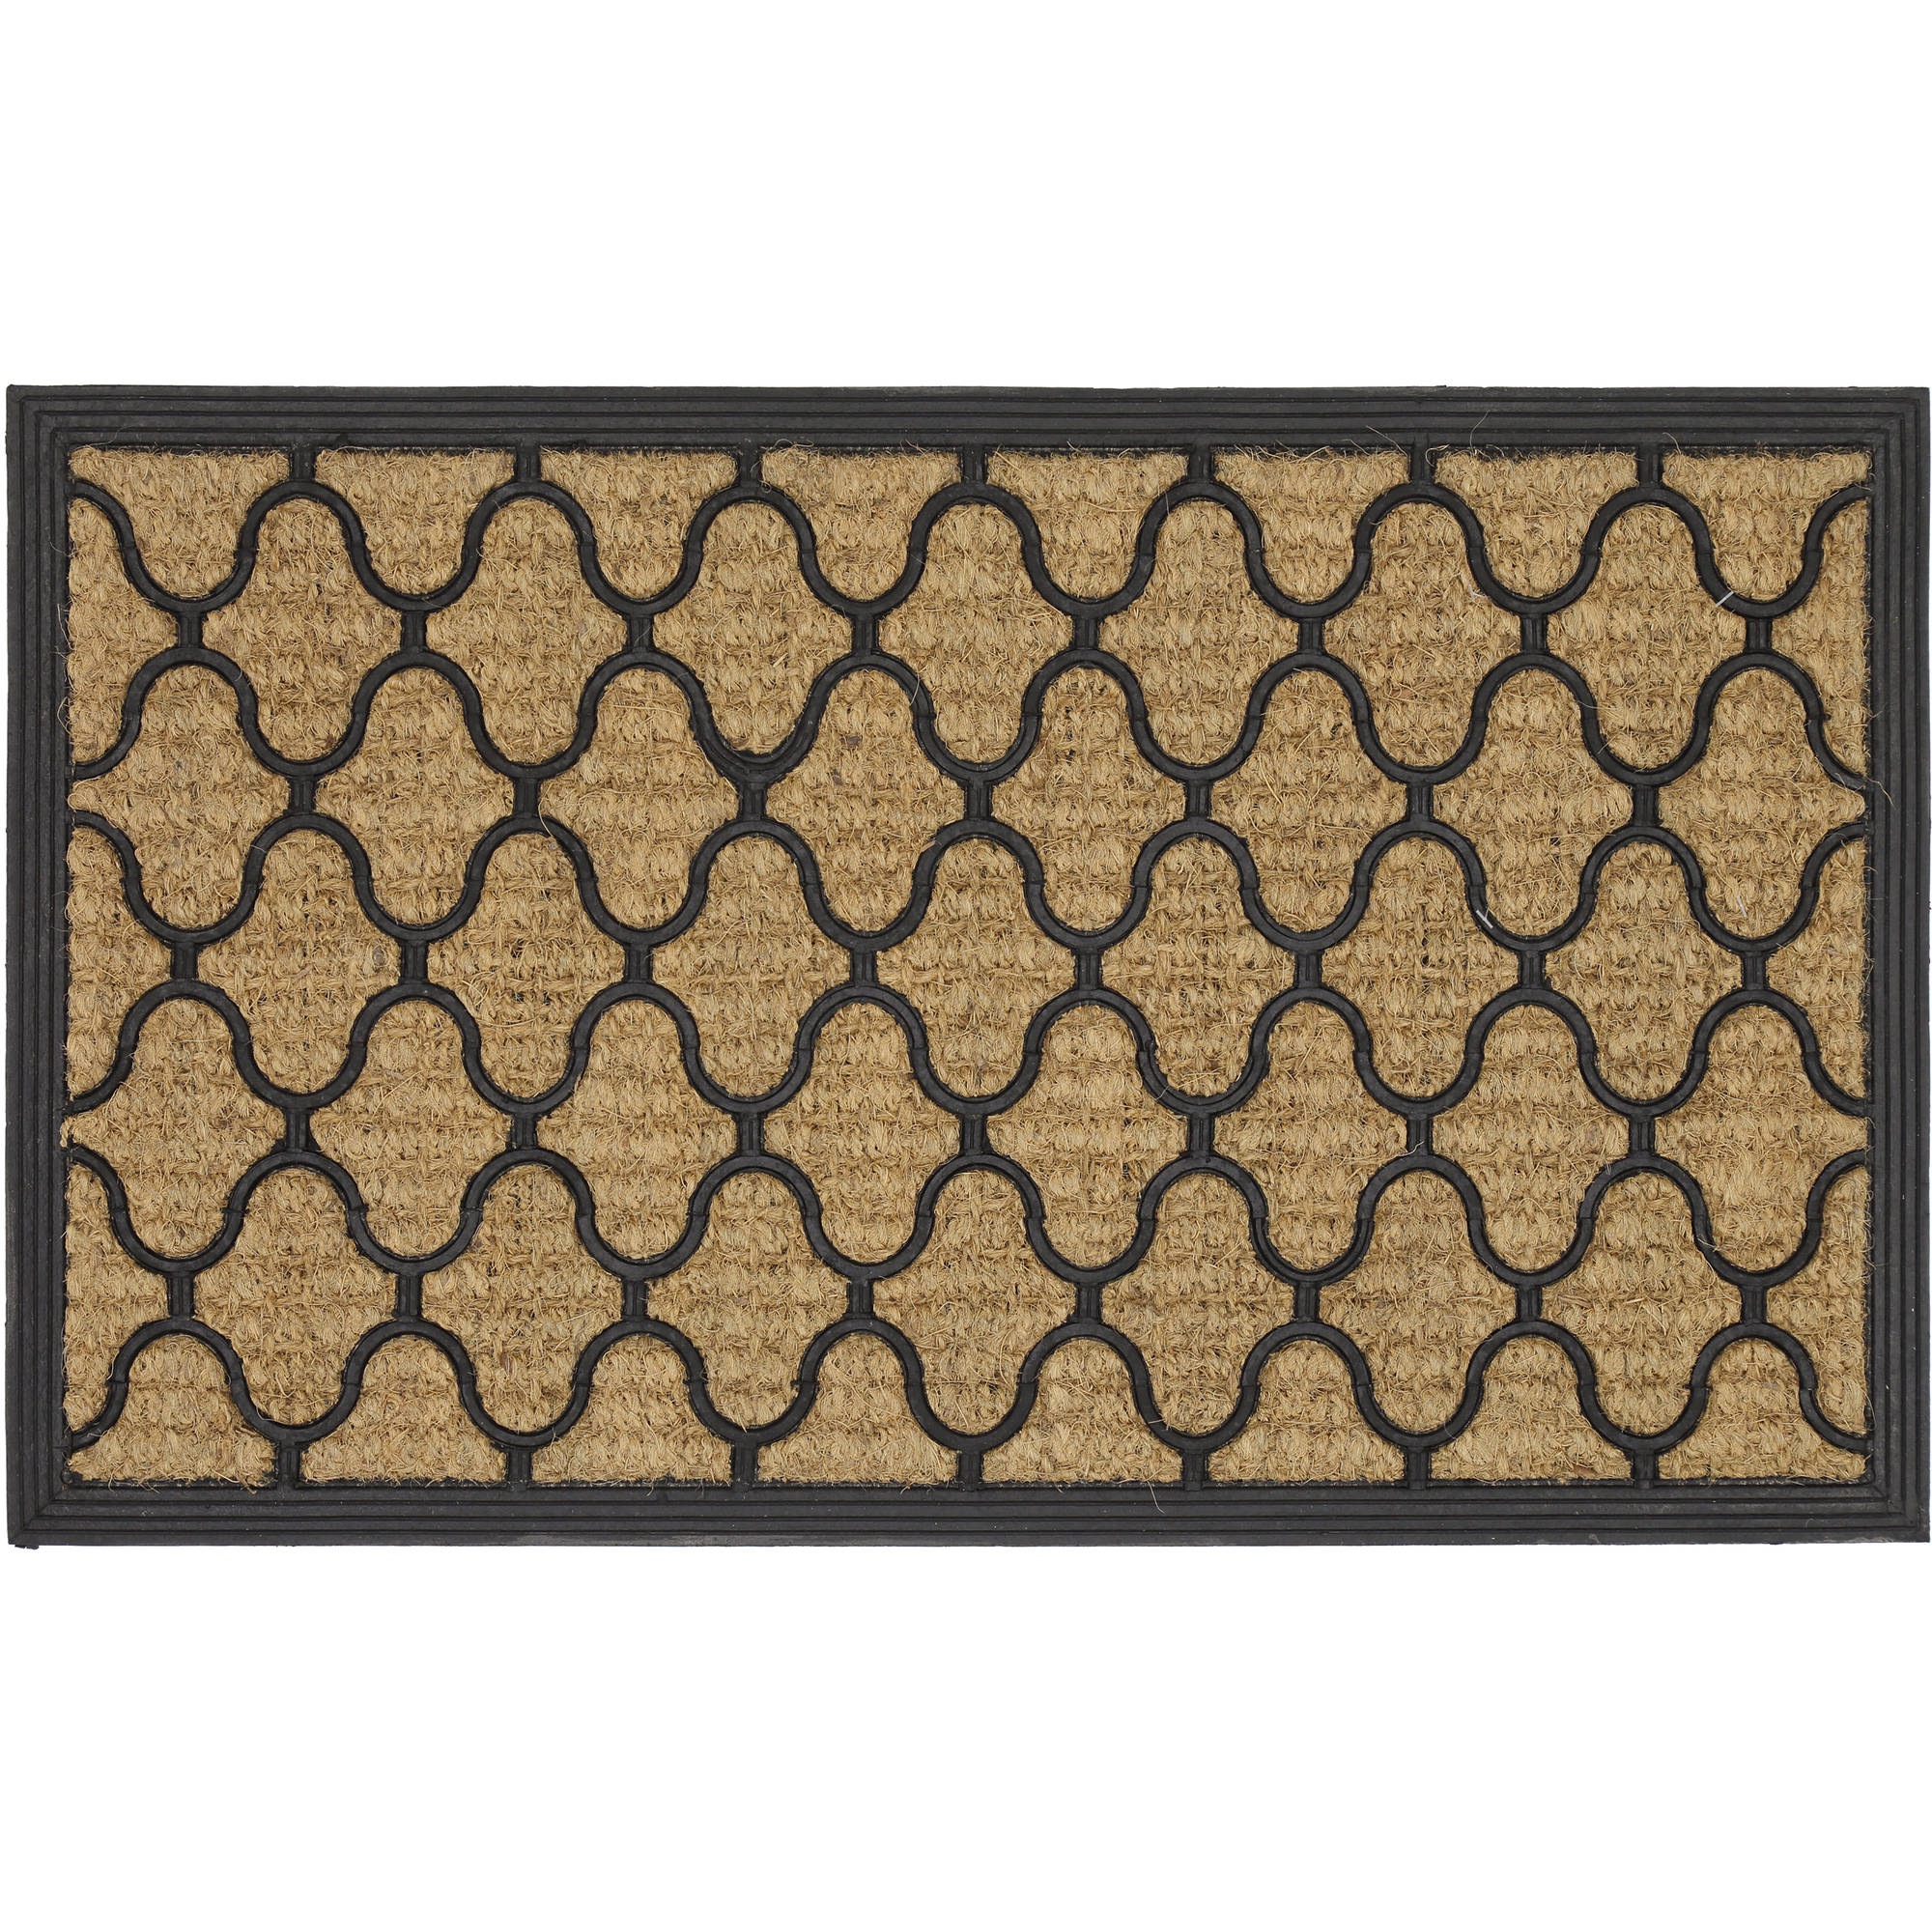 Mainstays Fret Rubber Coir Doormat